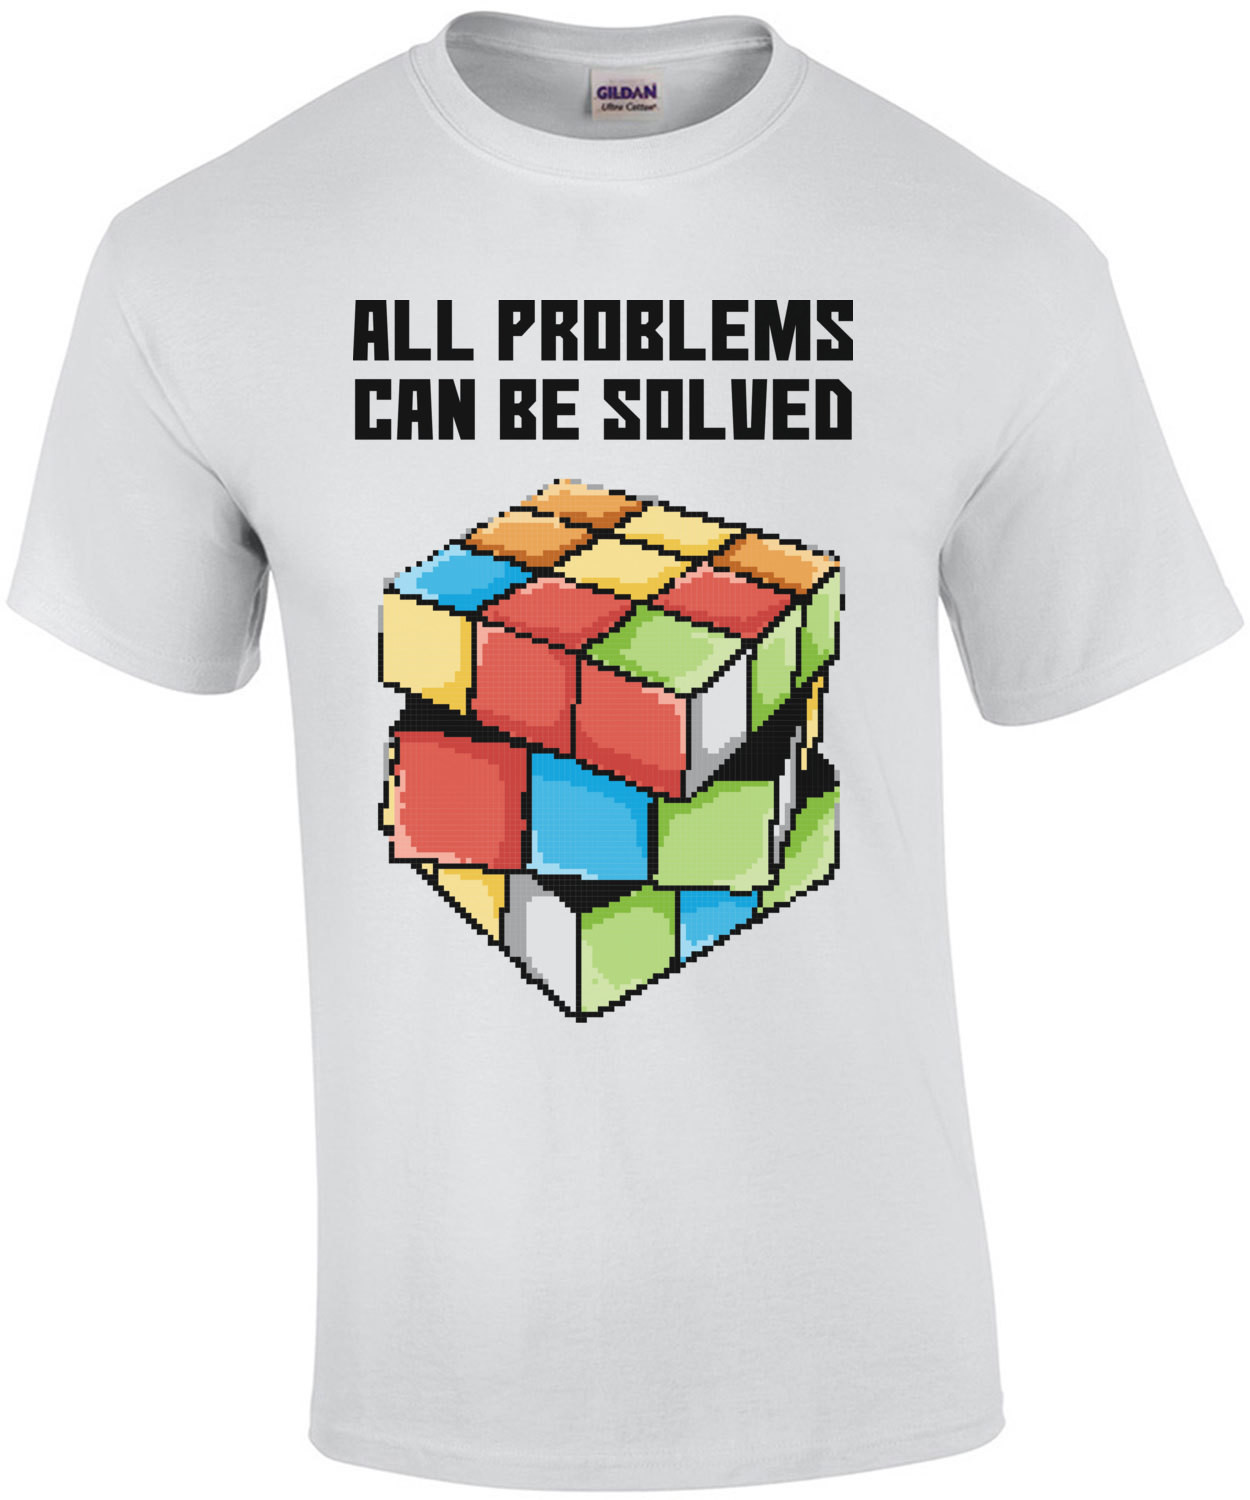 All Problems Can Be Solved Retro Rubiks Cube T-Shirt